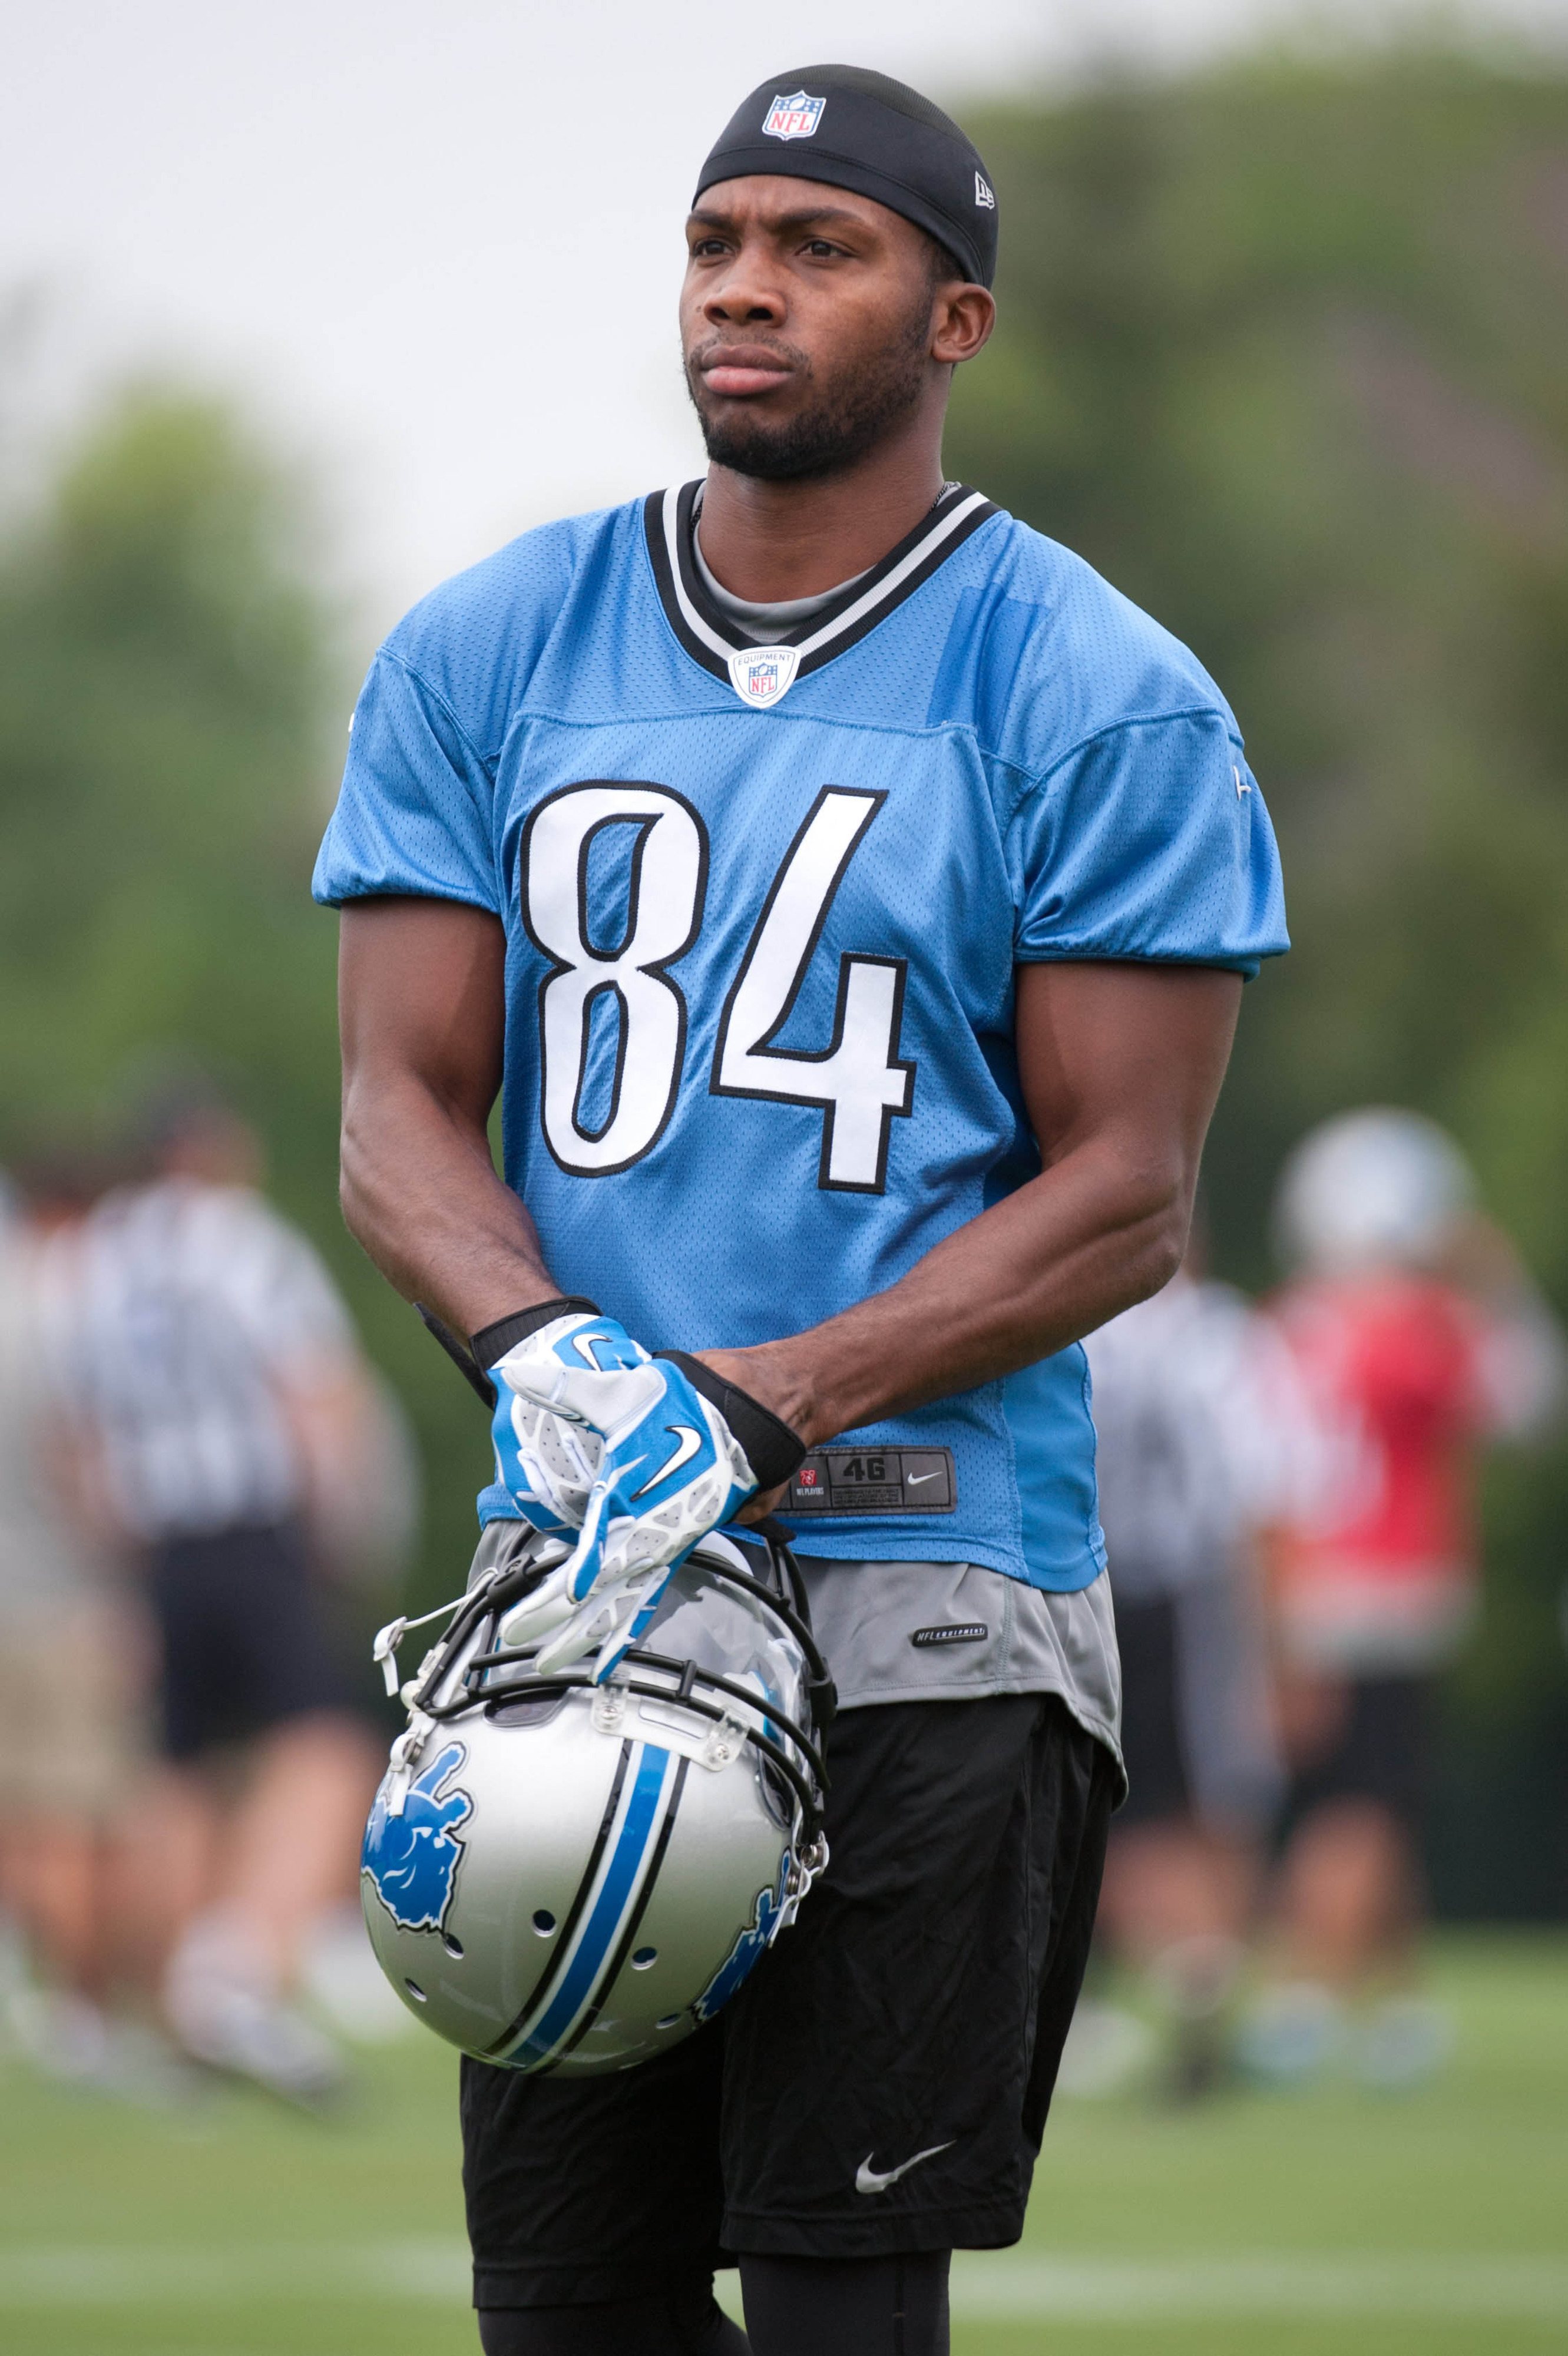 Ryan Broyles, Lions being cautious early in preseason; fantasy owners approve